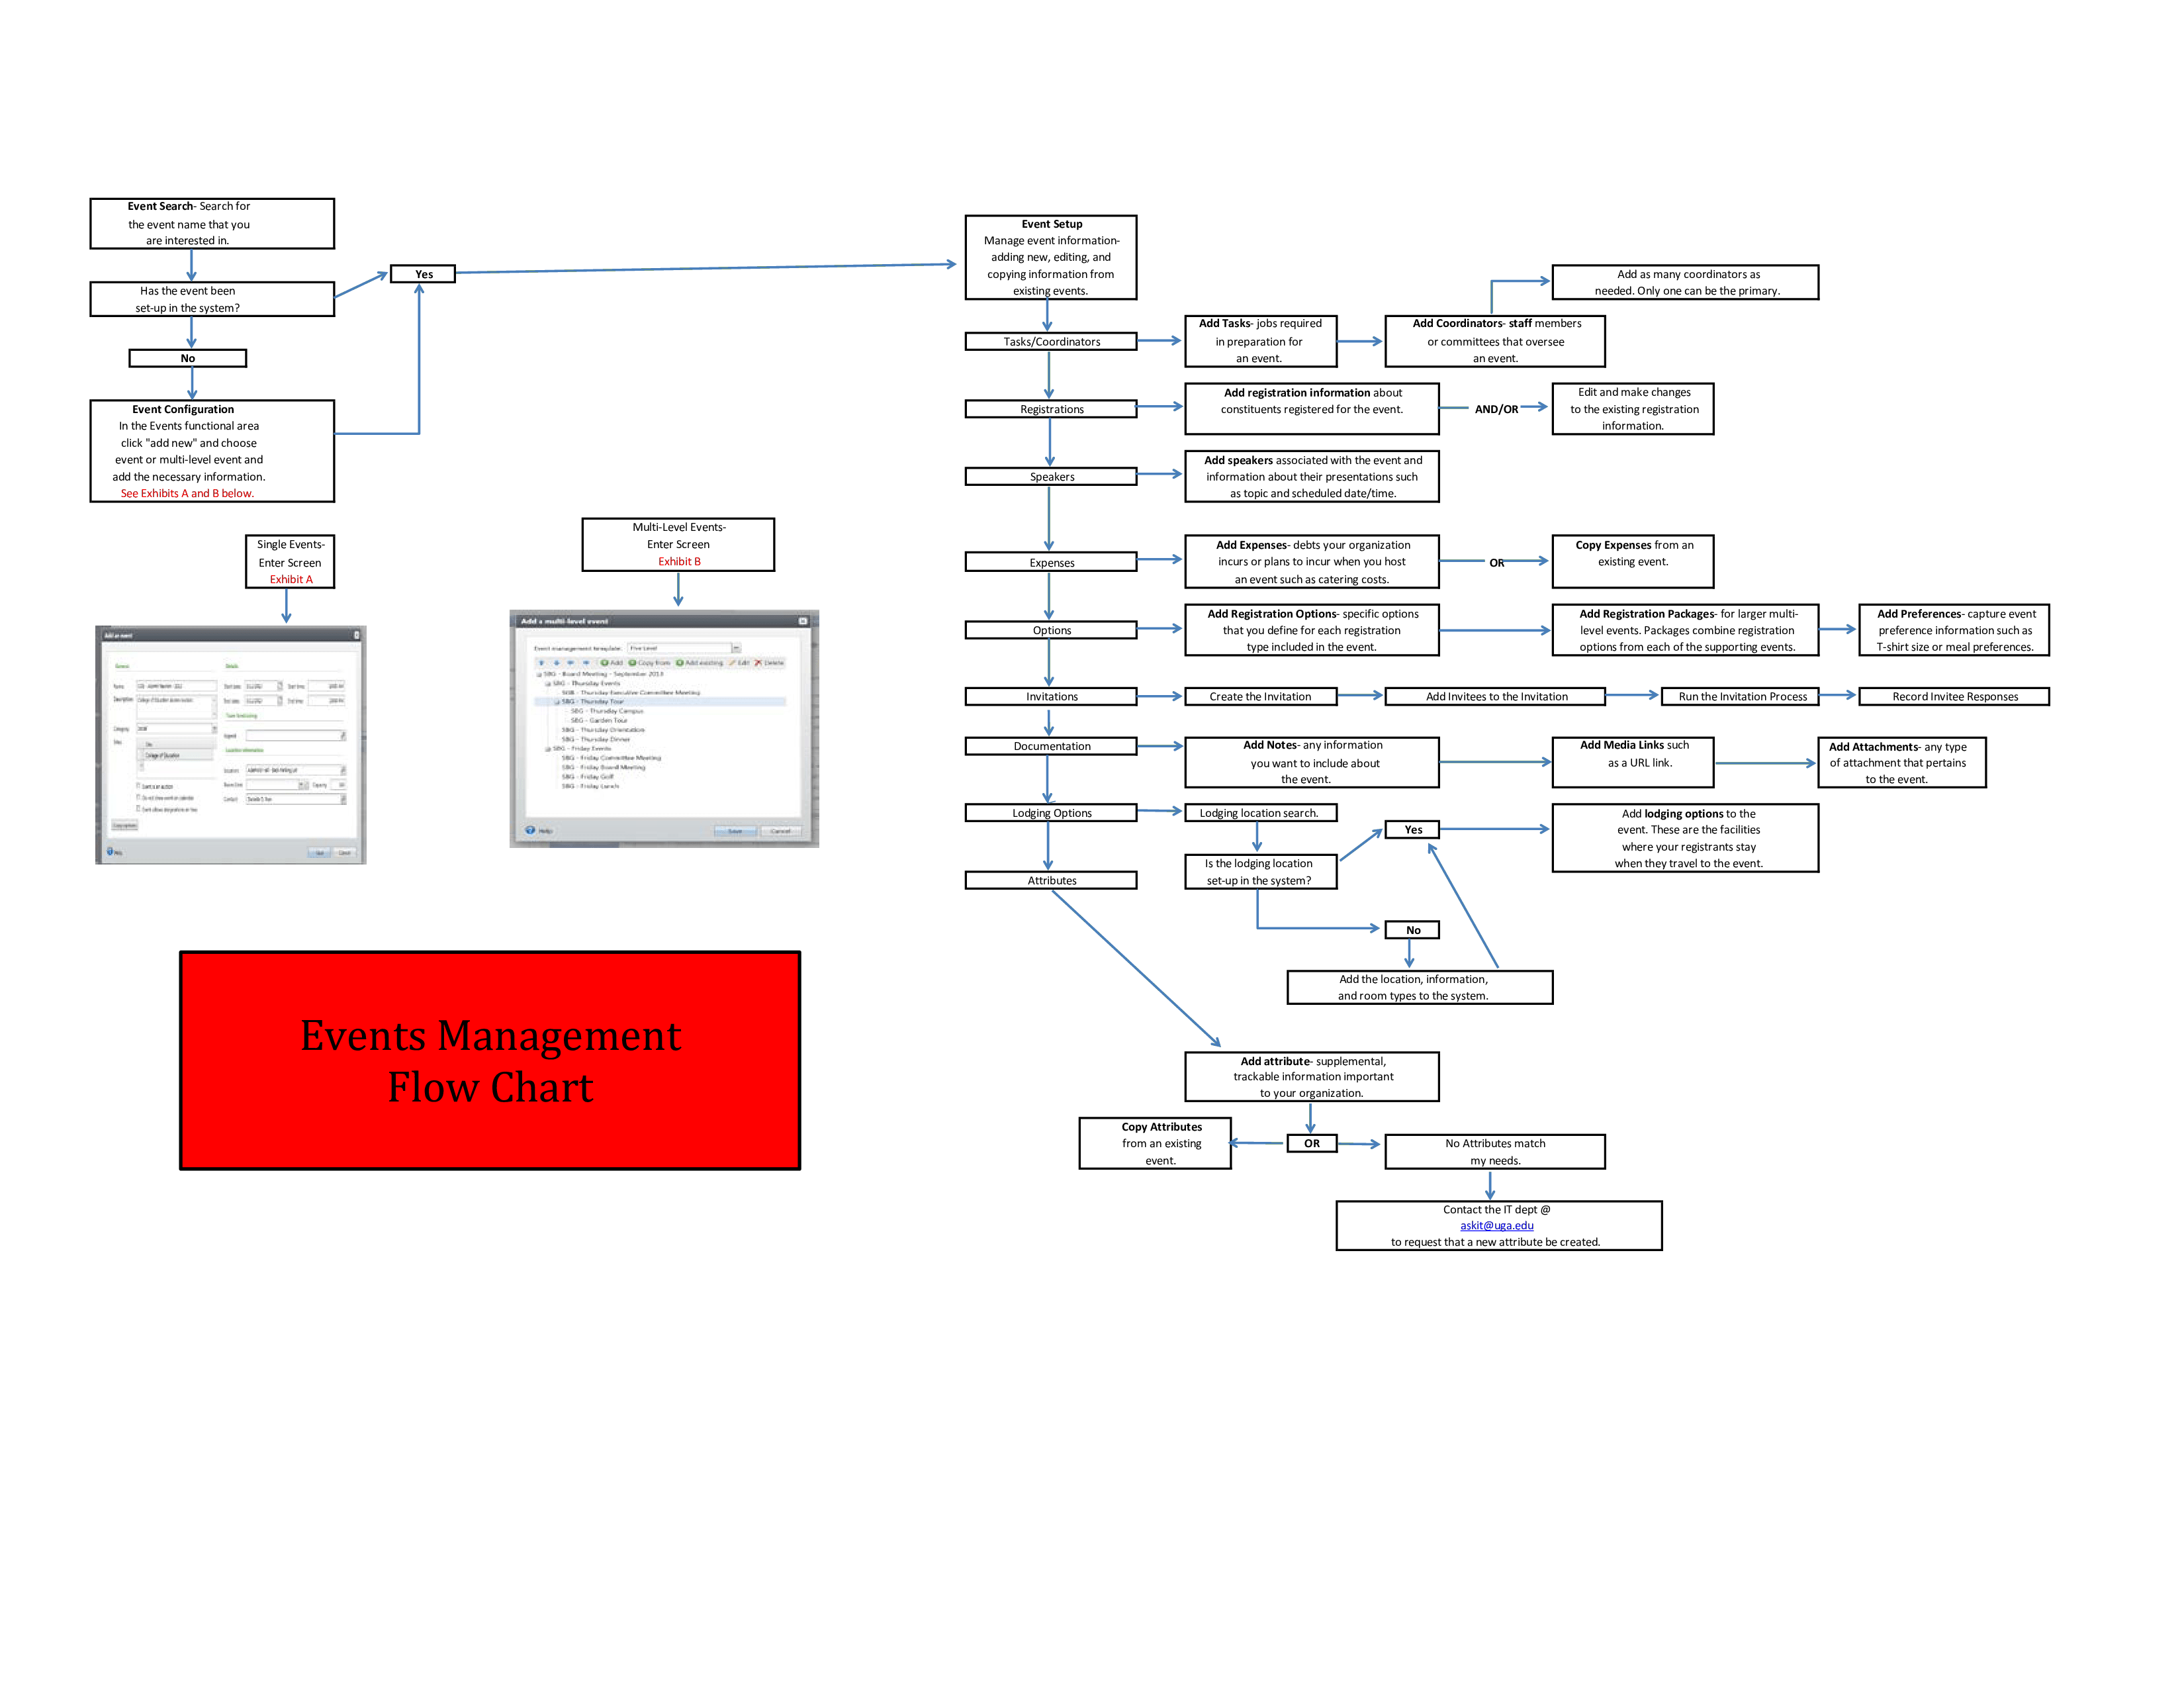 Event Management Process Flow Chart